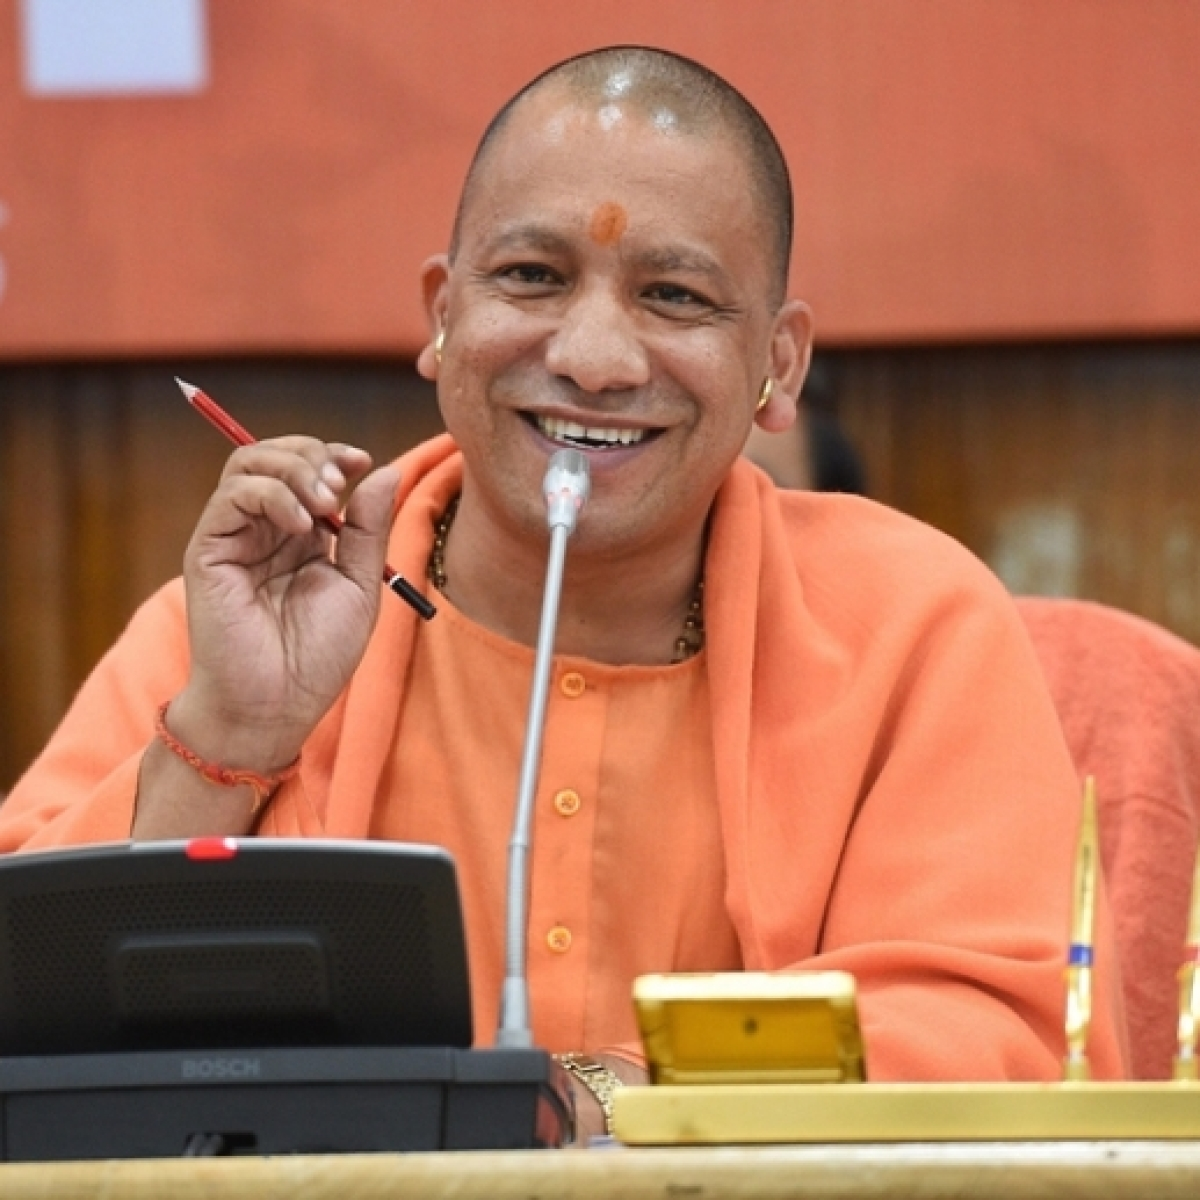 The government does not discriminate on the basis of religions, claims Yogi Adityanath